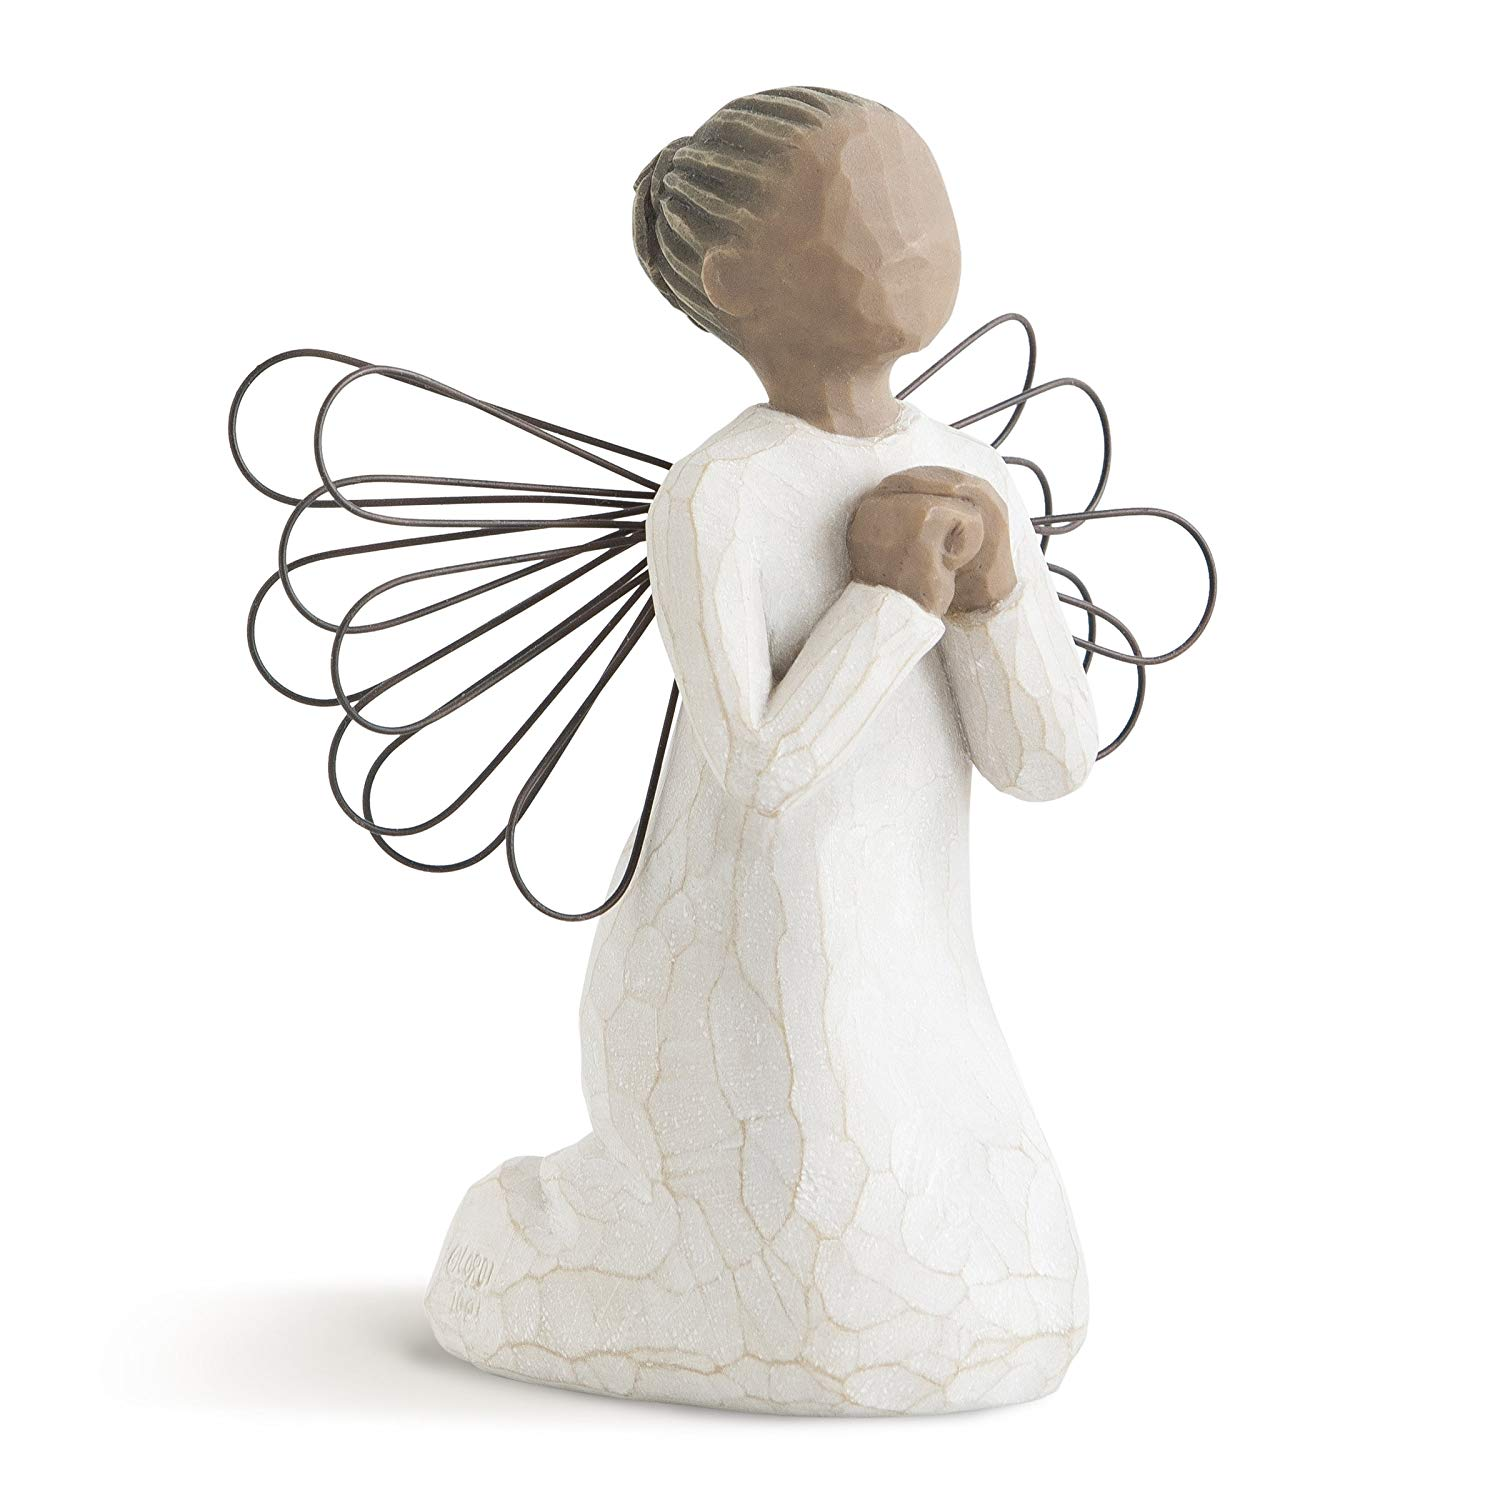 first-communion-gifts-statue